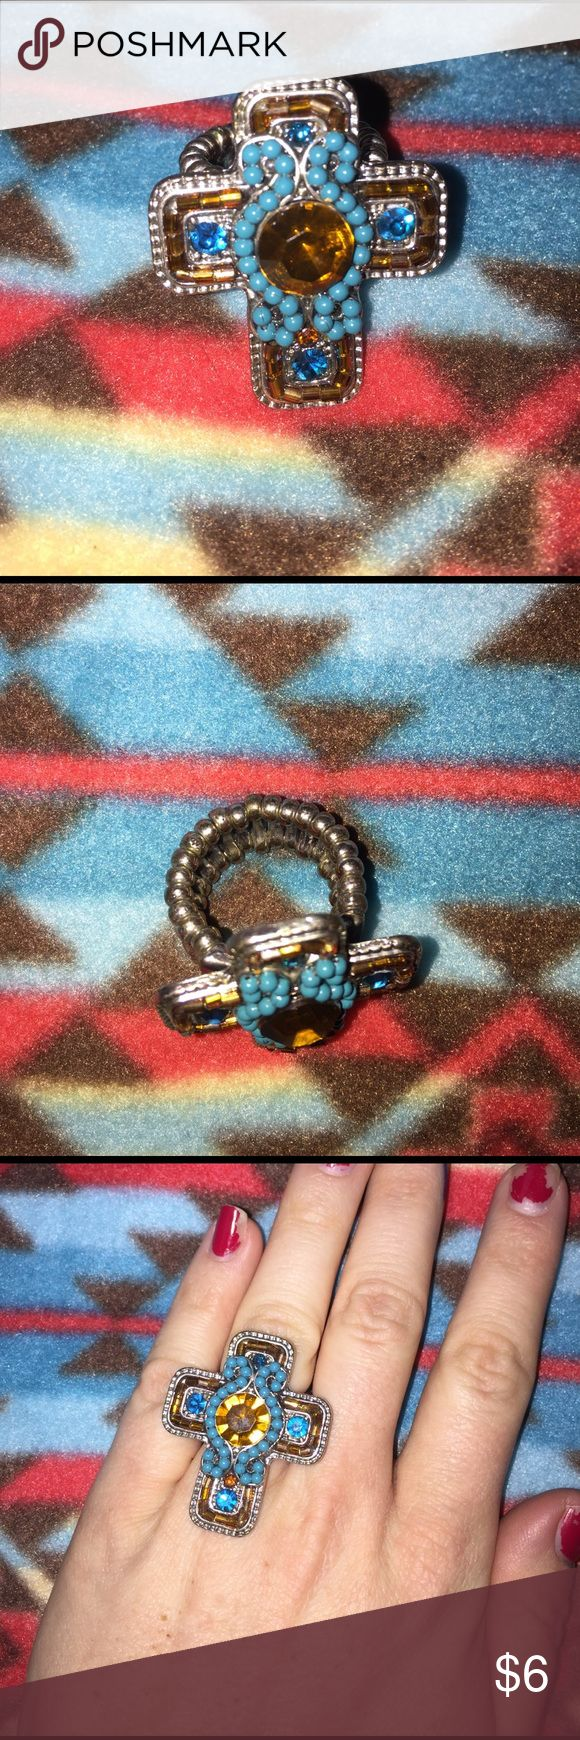 Beautiful Brown/Blue Cross Ring Beautiful Brown/Blue Cross Ring on a one size fits all stretch ring. Turquoise blue and amber brown coloring. Jewelry Rings